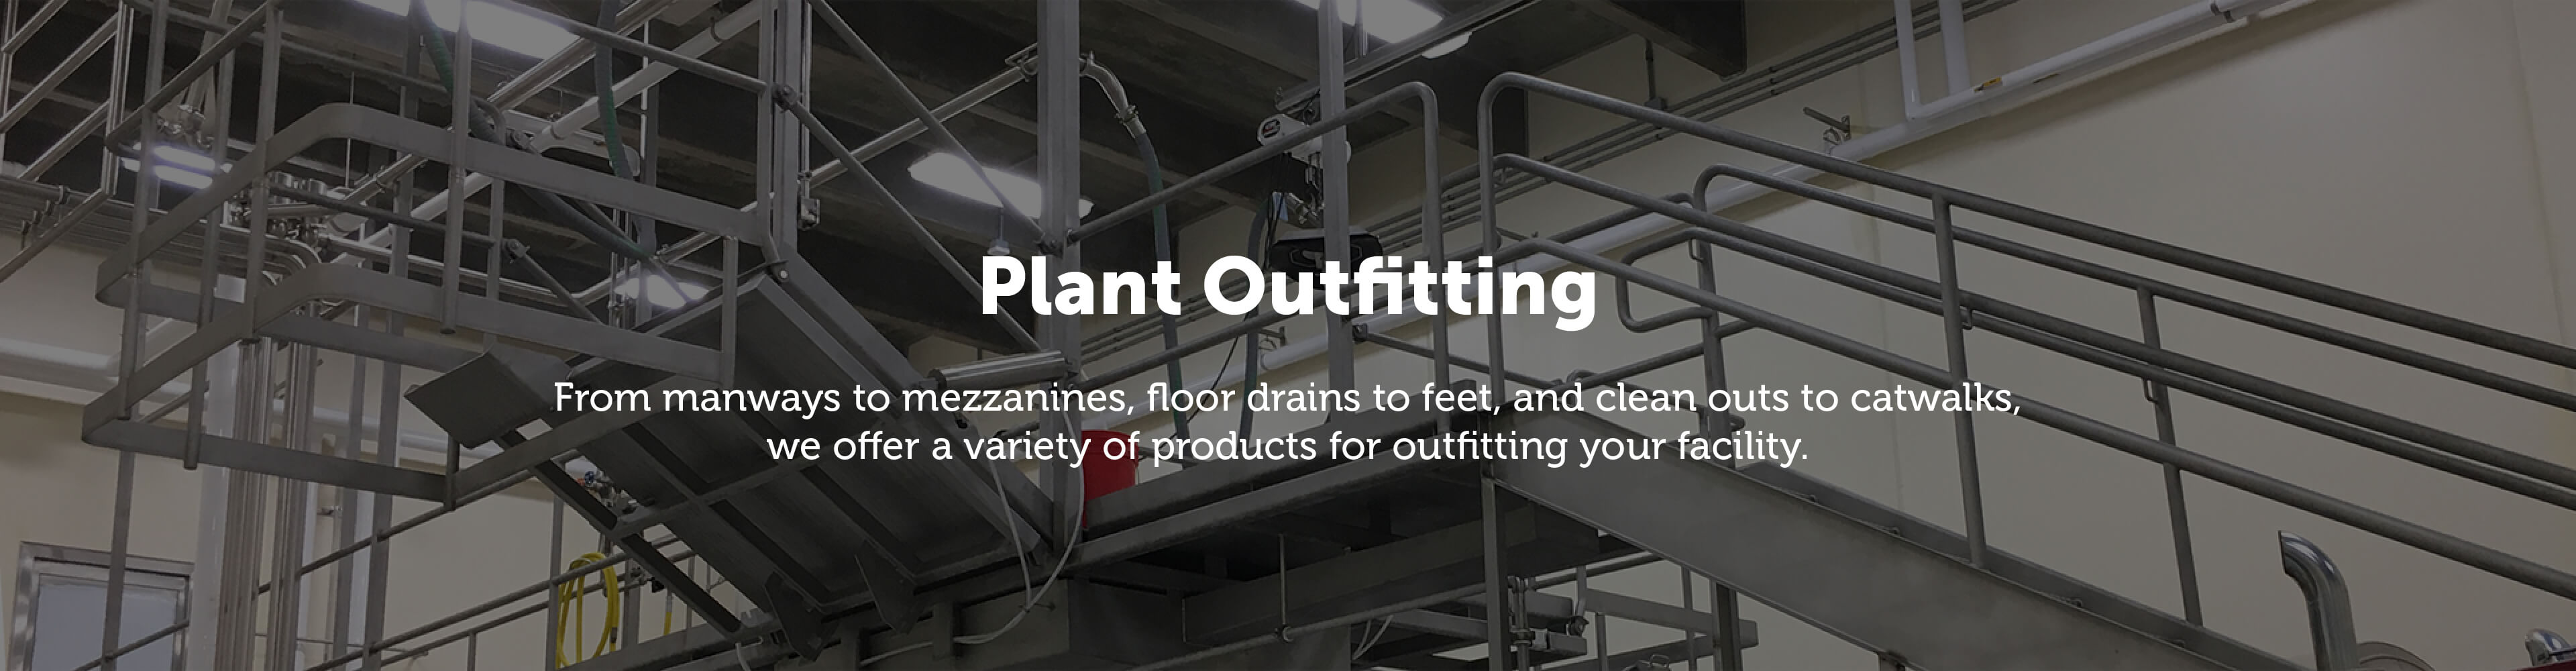 Koss Plant Outfitting